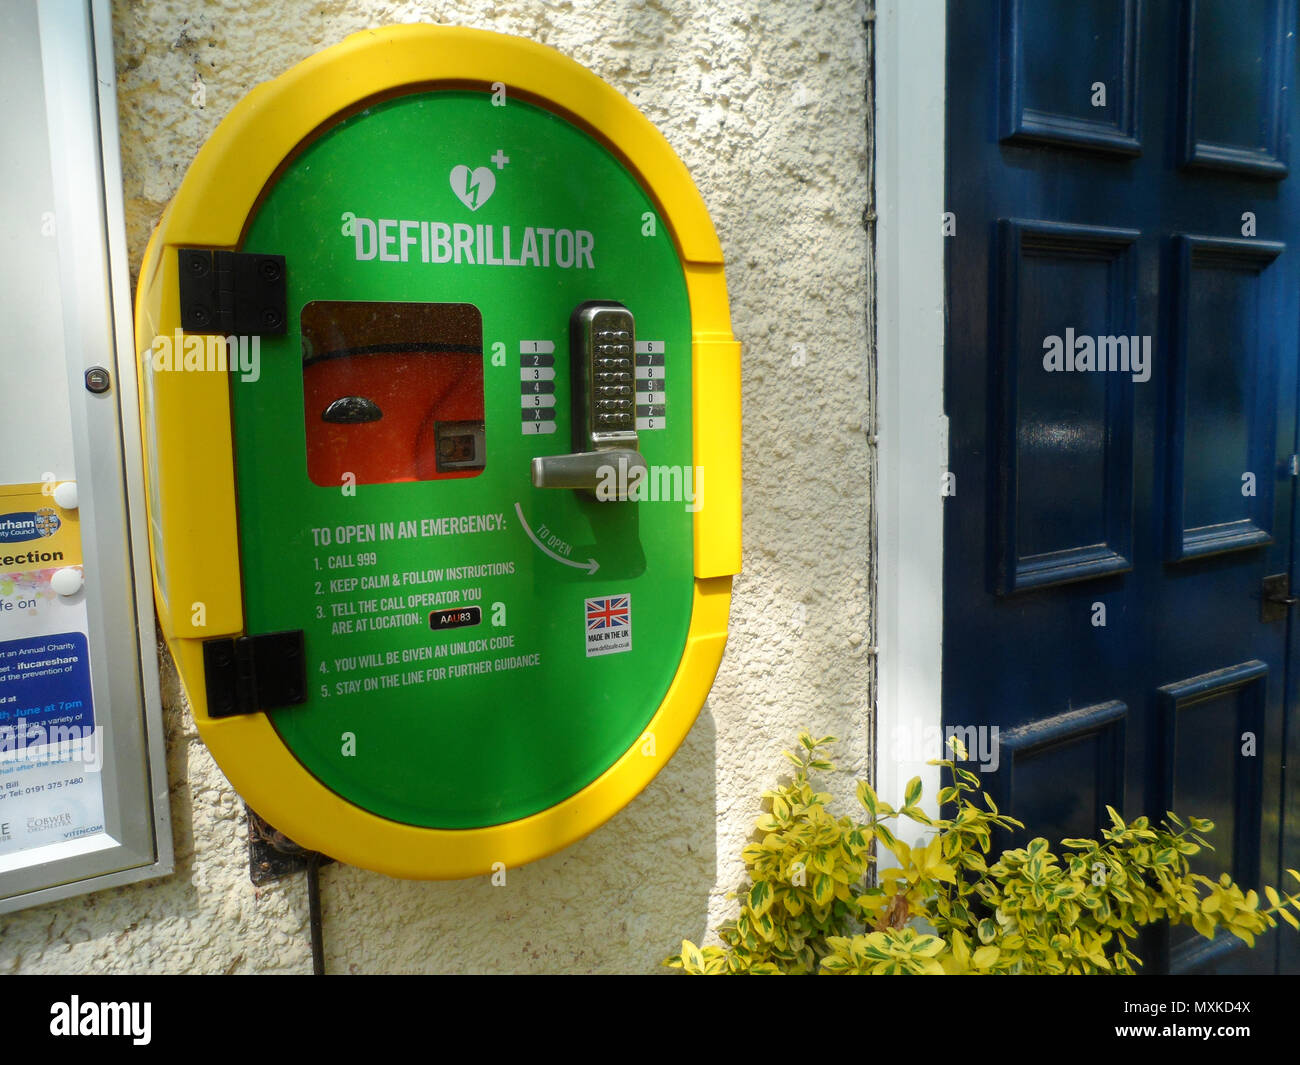 Public emergency defibrillator mounted on the wall of the community center at Shincliffe, County Durham, England. - Stock Image